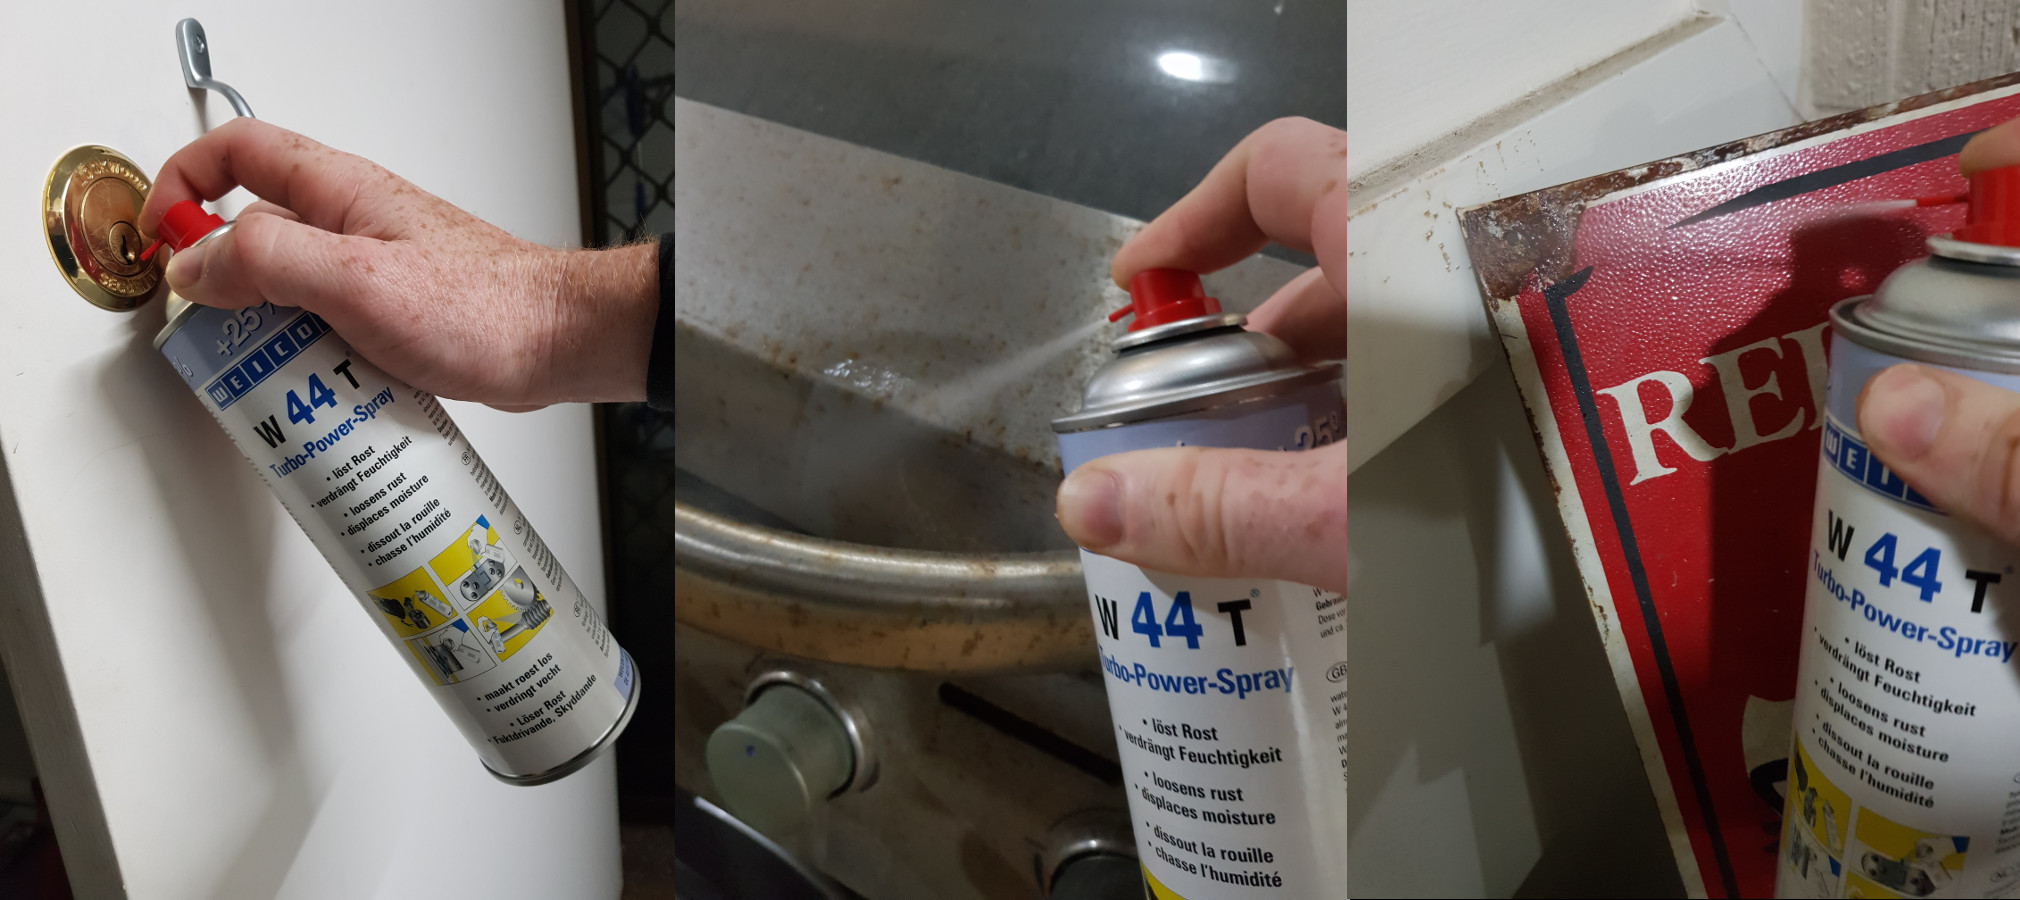 Different uses for W44T penetrating oil spray as a replacement for WD-40